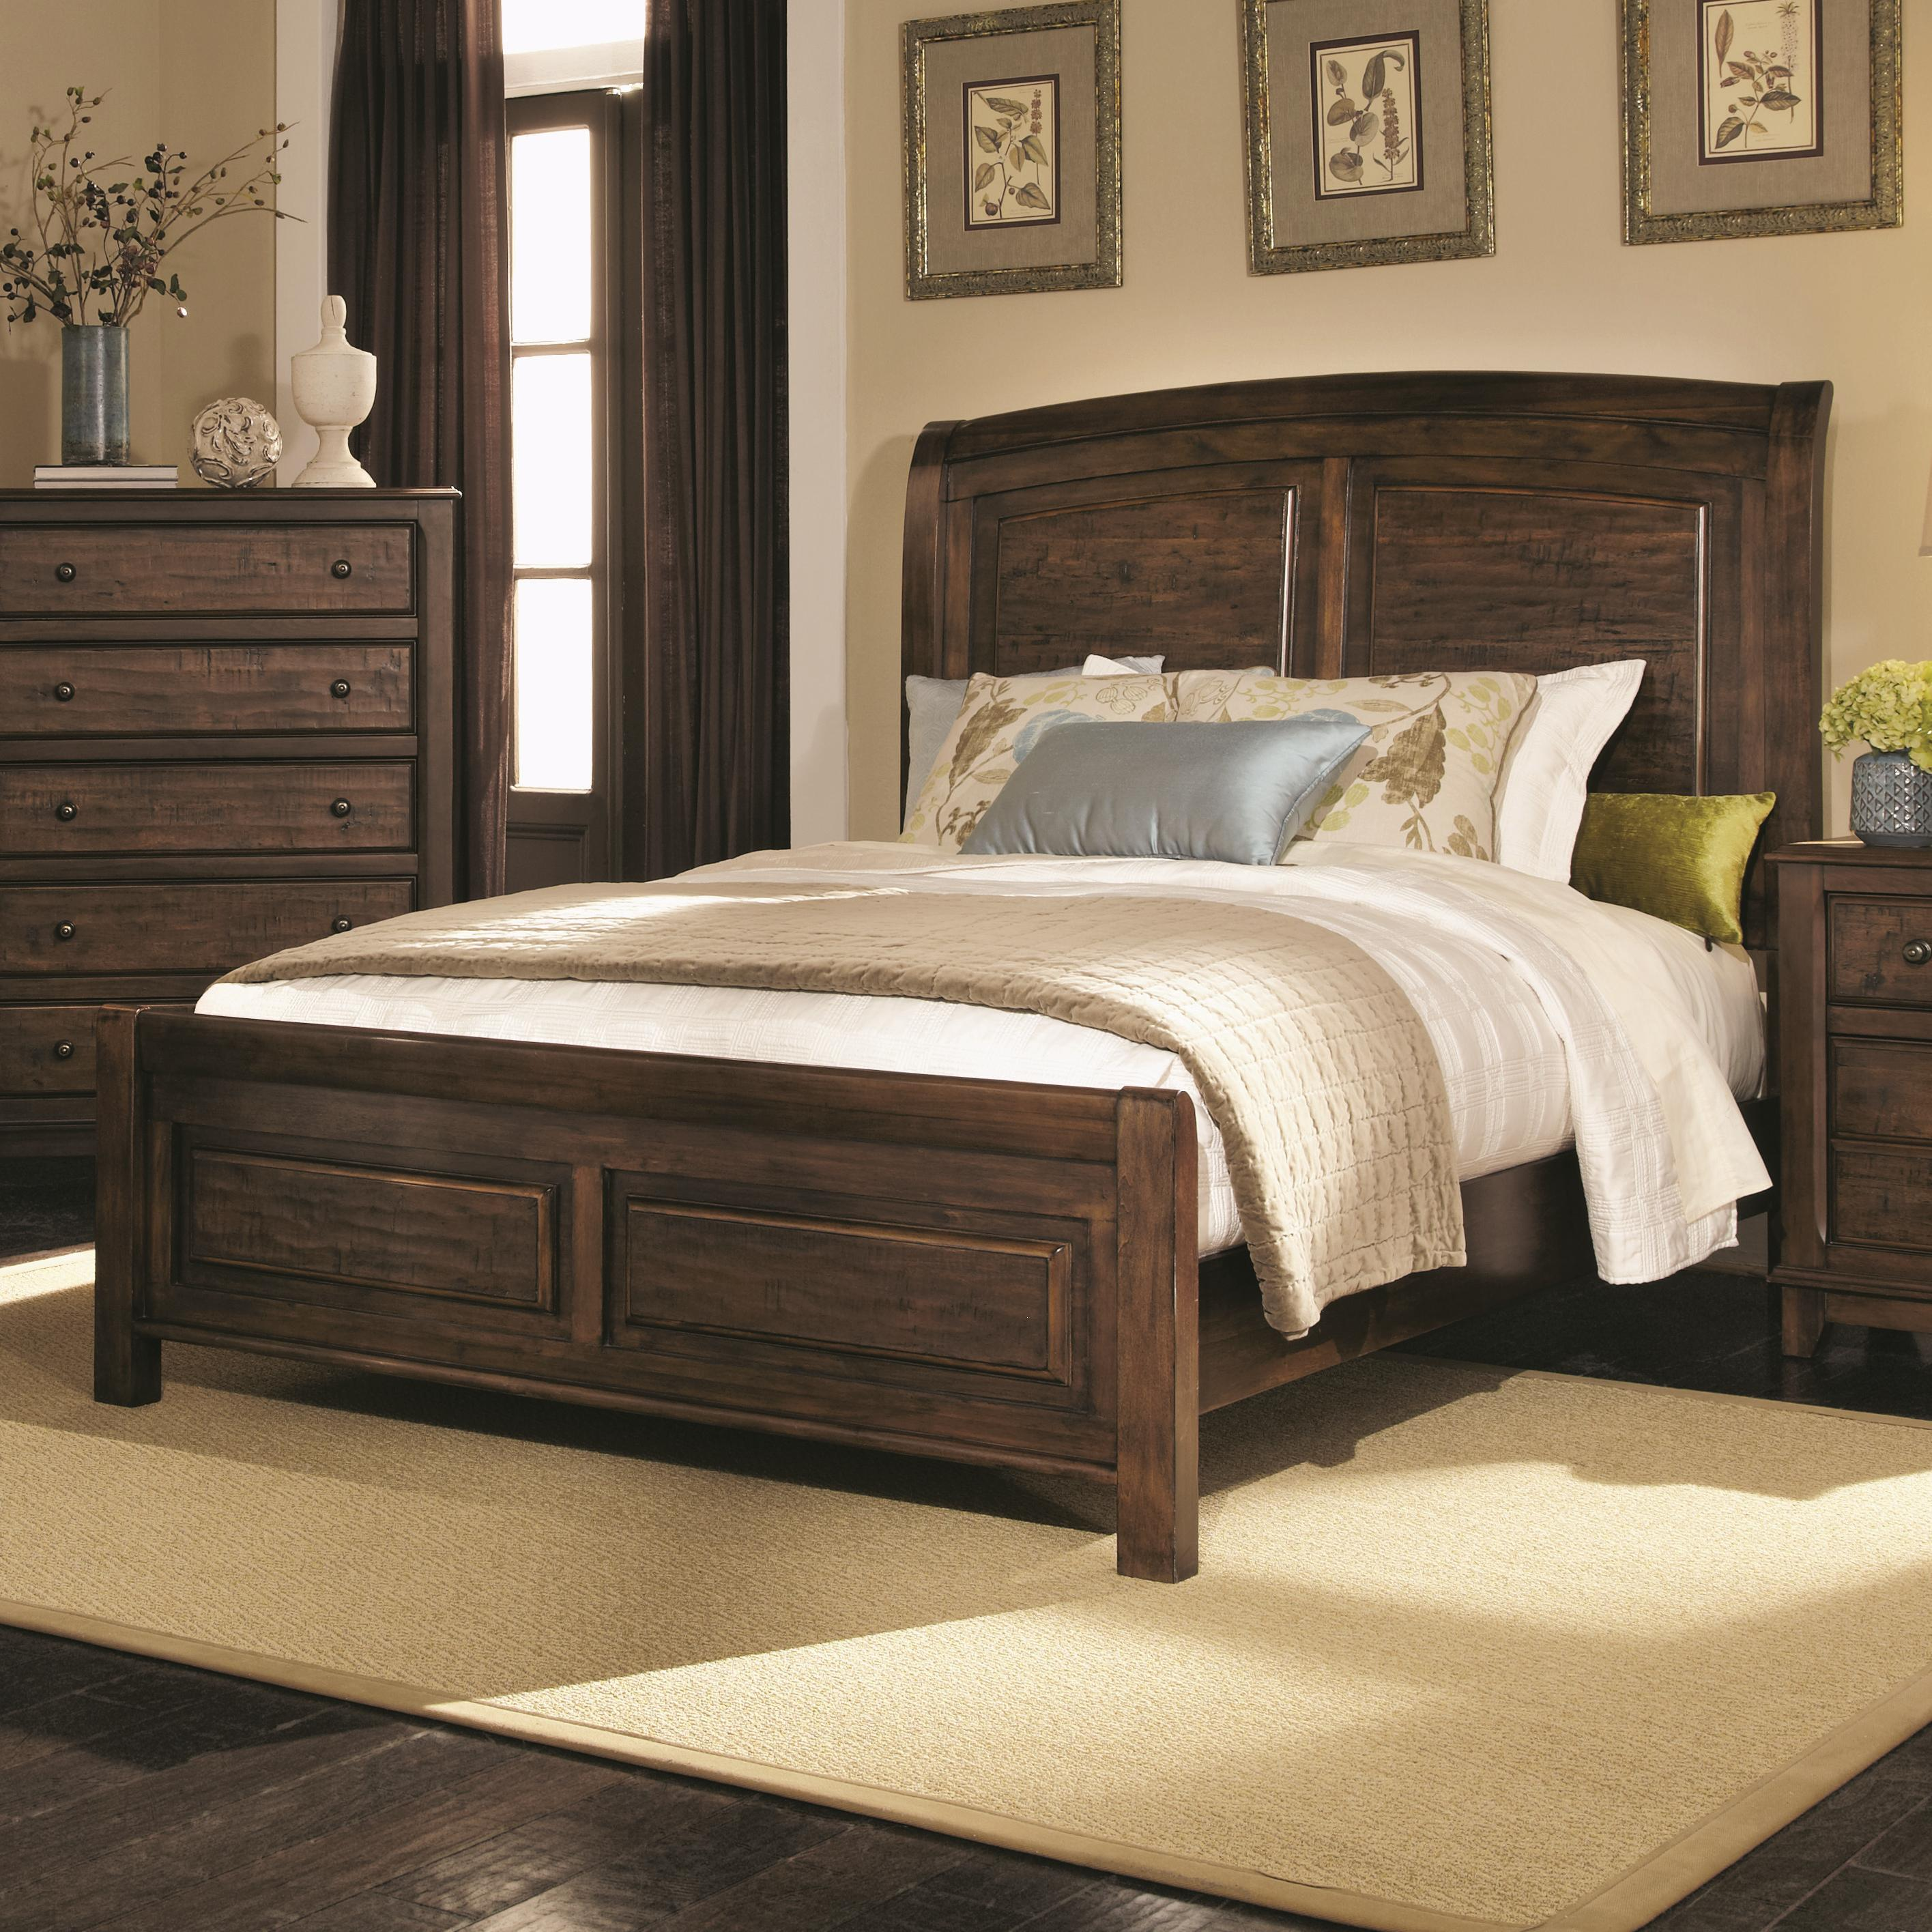 Coaster Laughton California King Sleigh Bed - Item Number: 203260KW